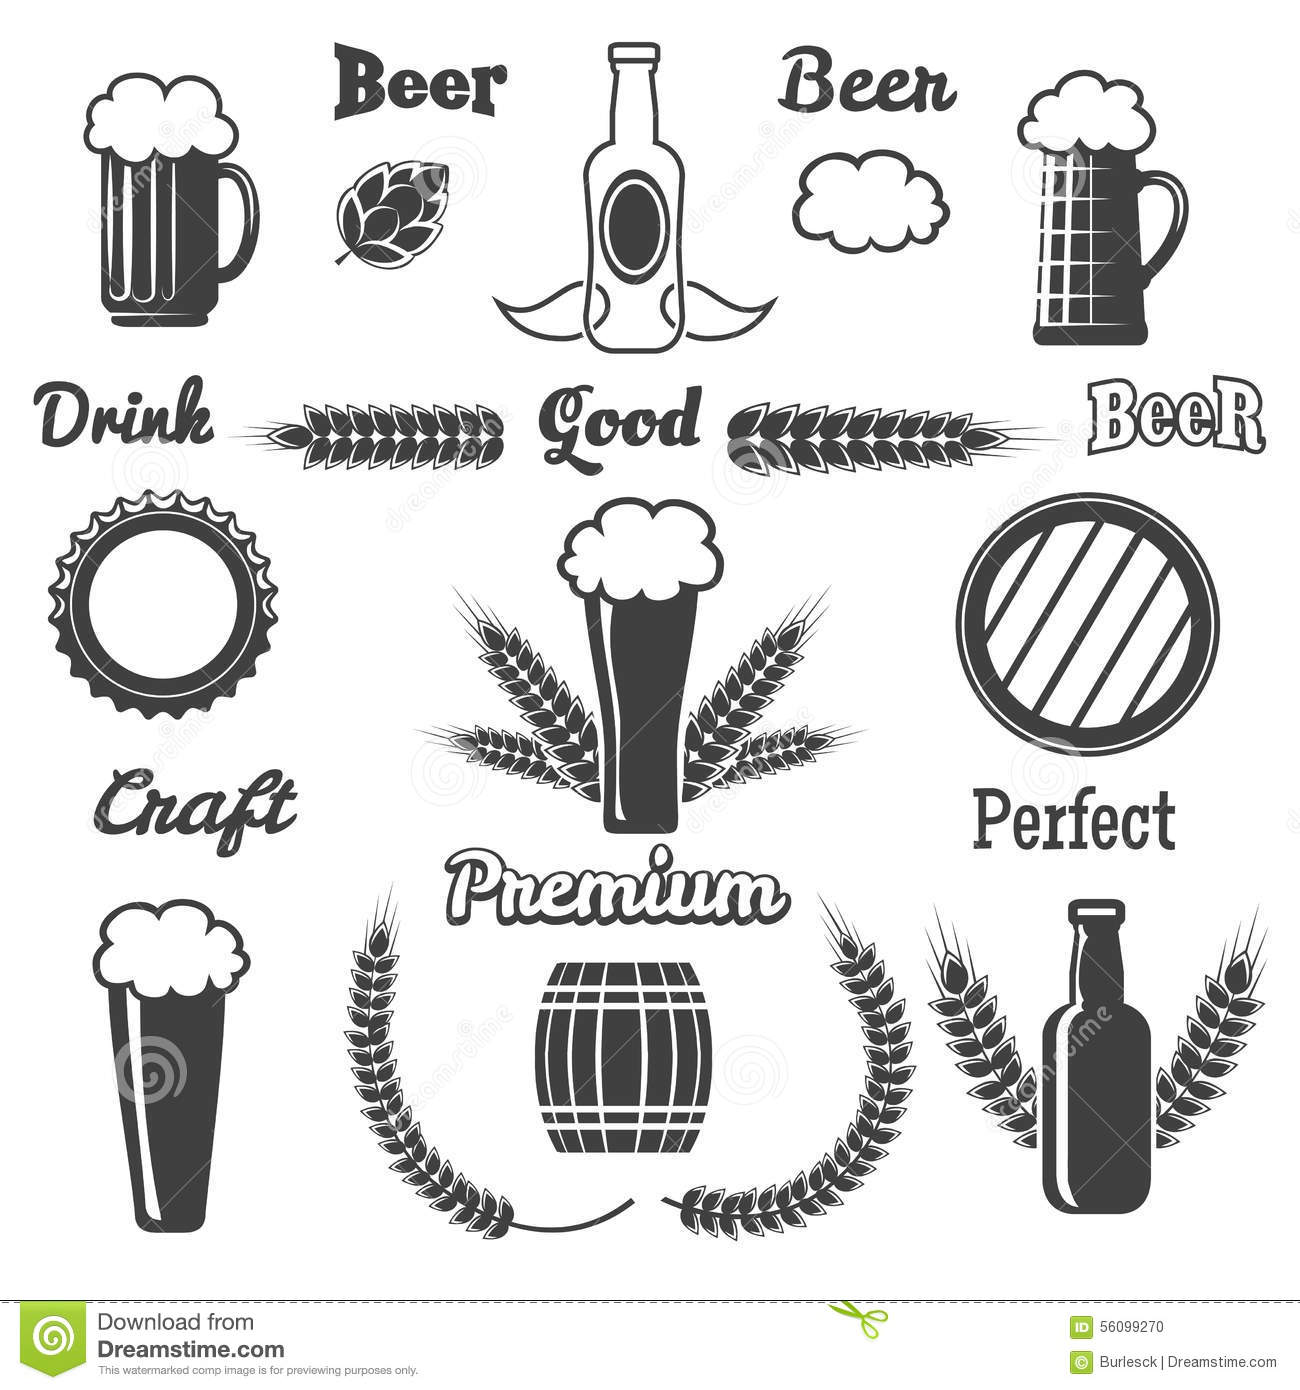 Beer clipart drawing. Hop craft pencil and